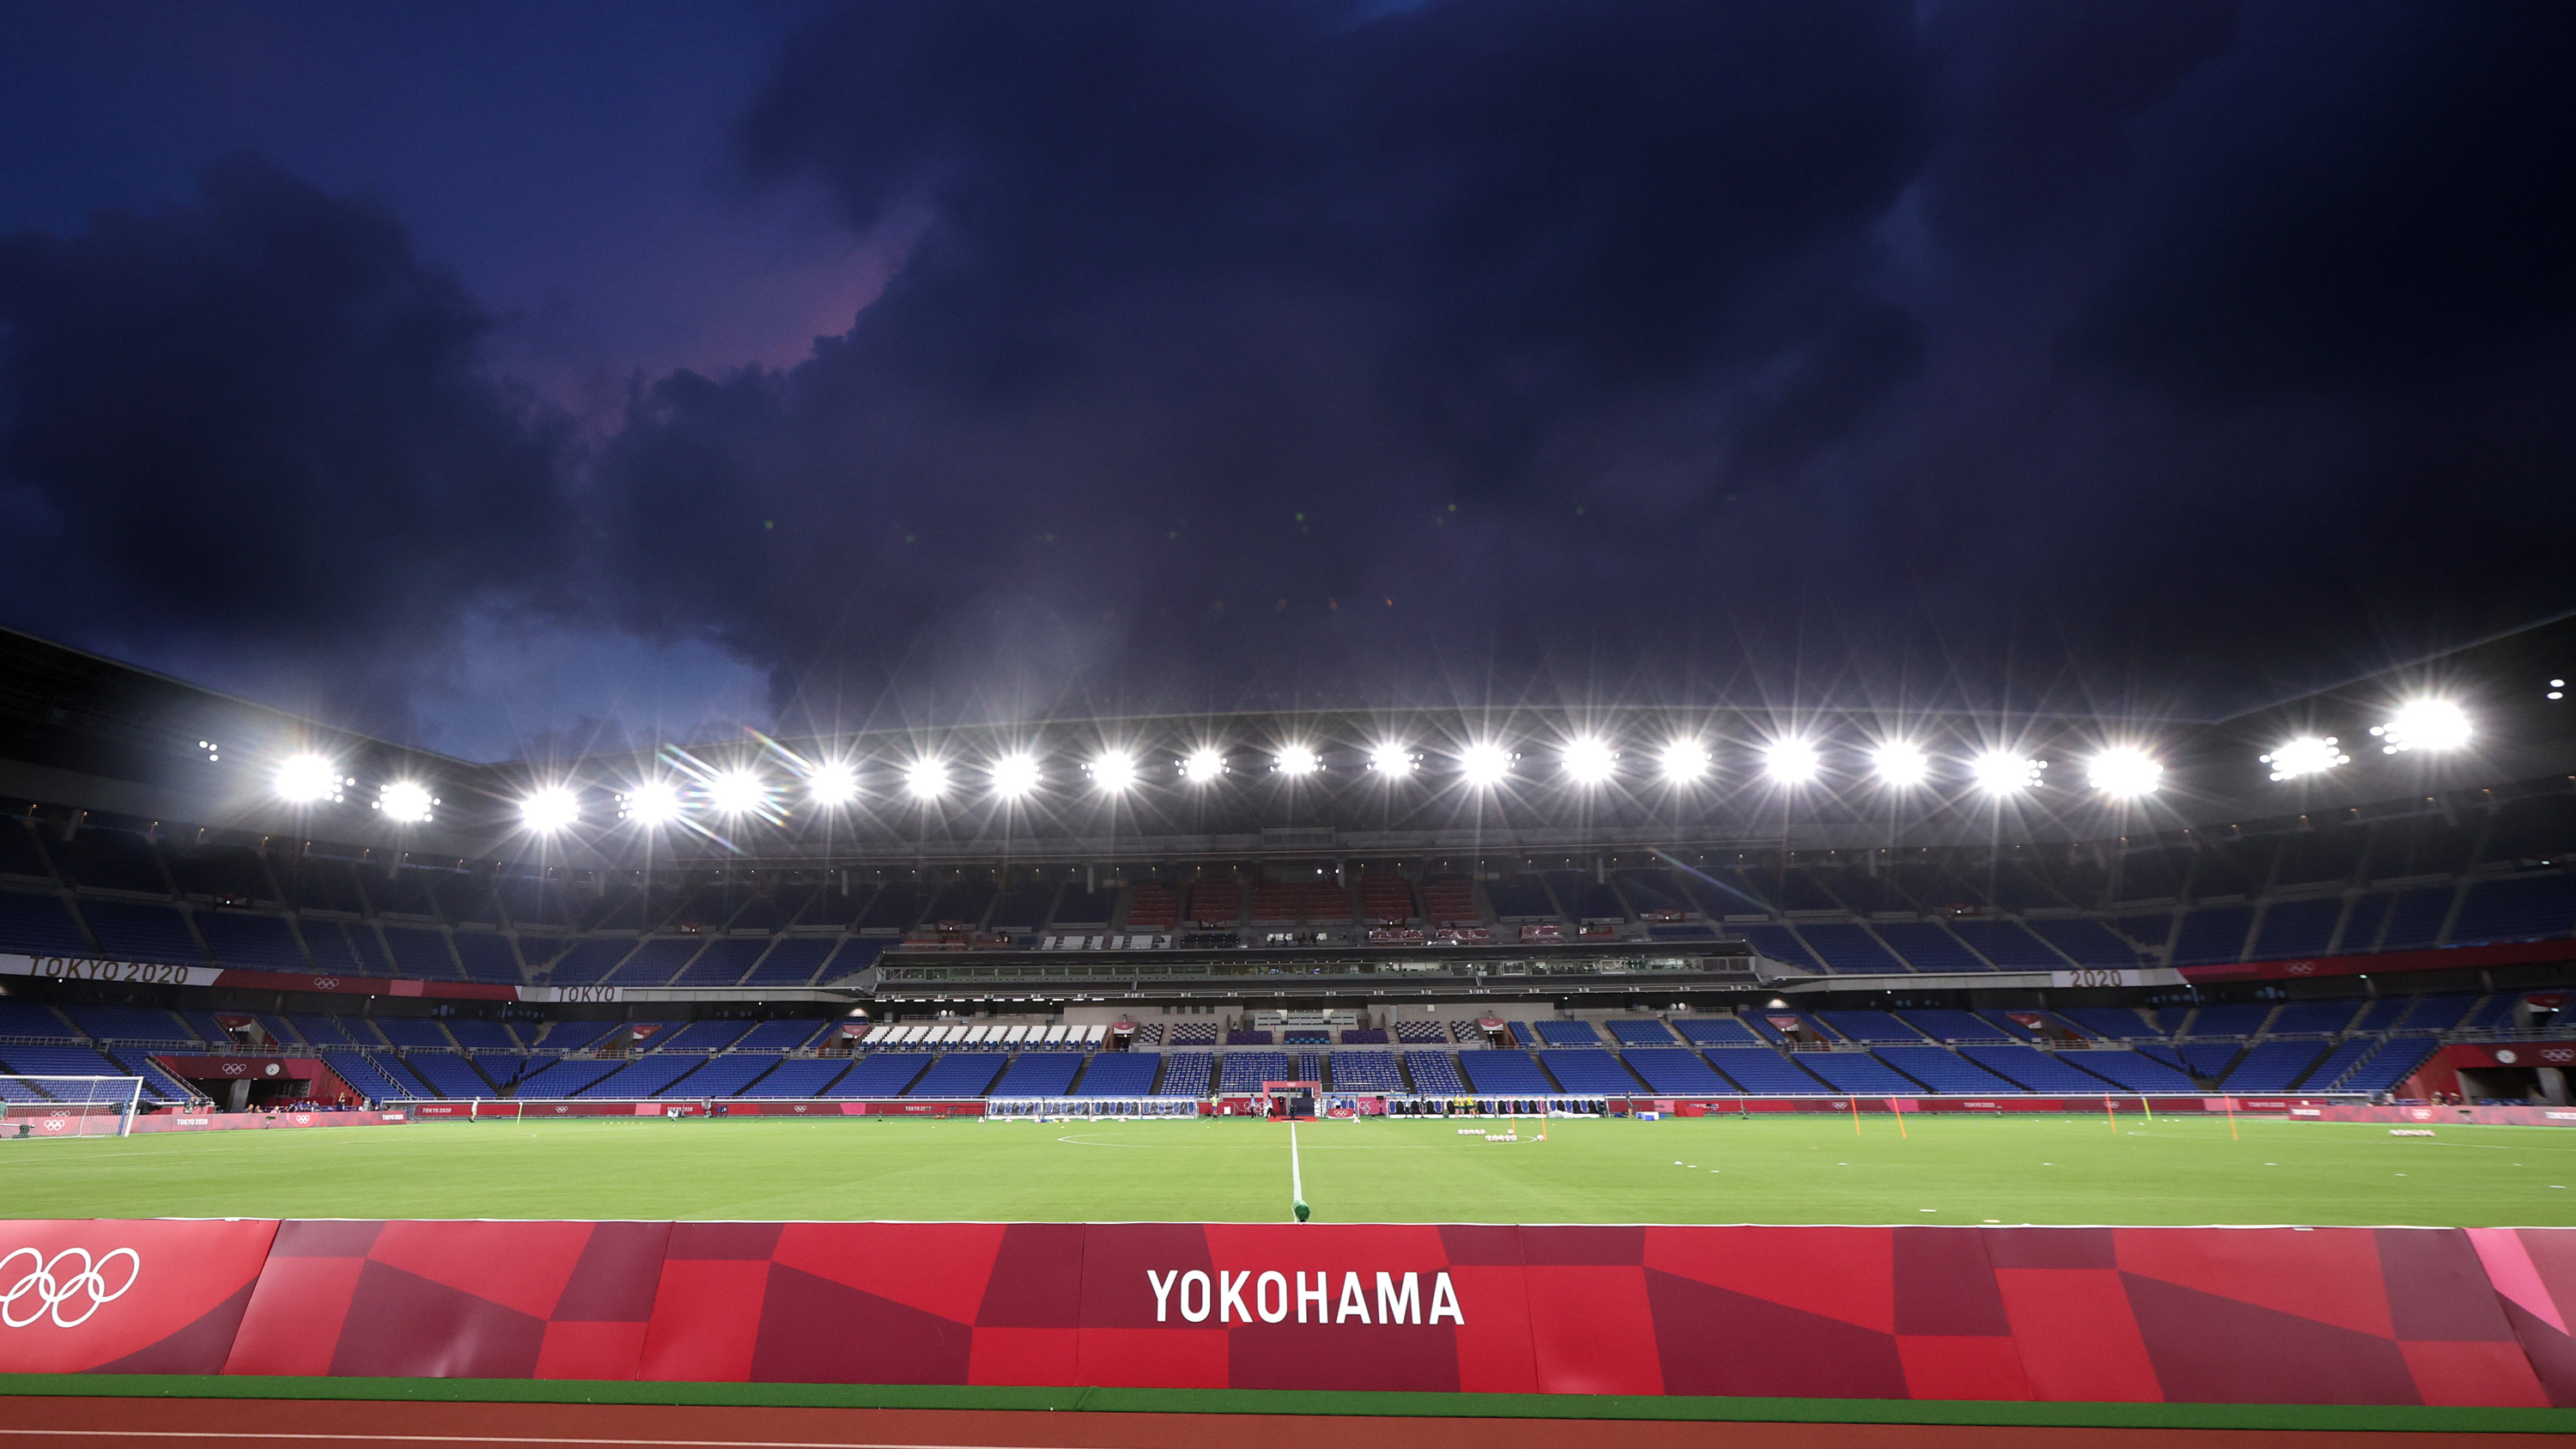 The International Stadium Yokohama, where the women's gold medal match will now take place, is seen on August 2.